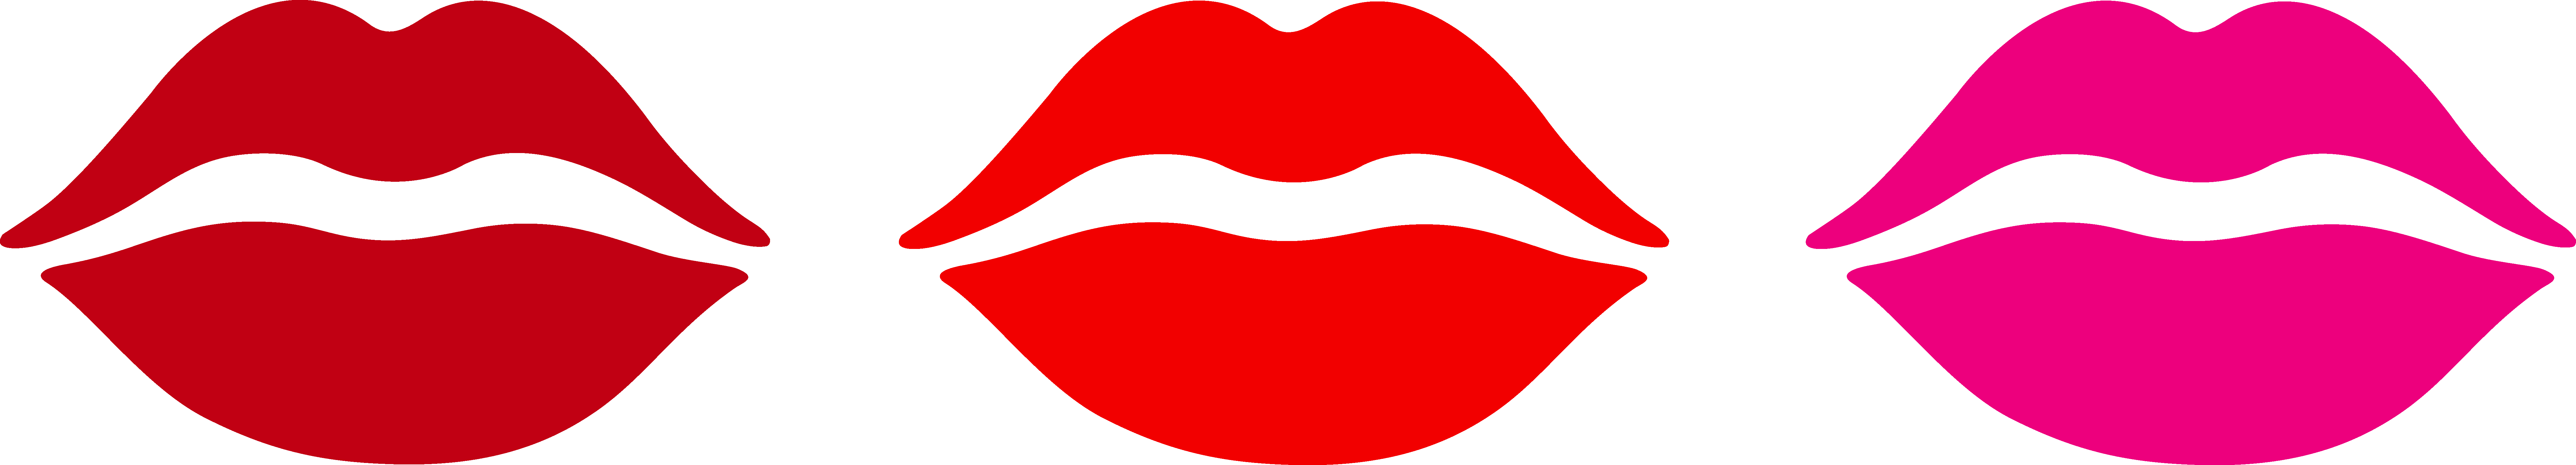 kiss clipart three